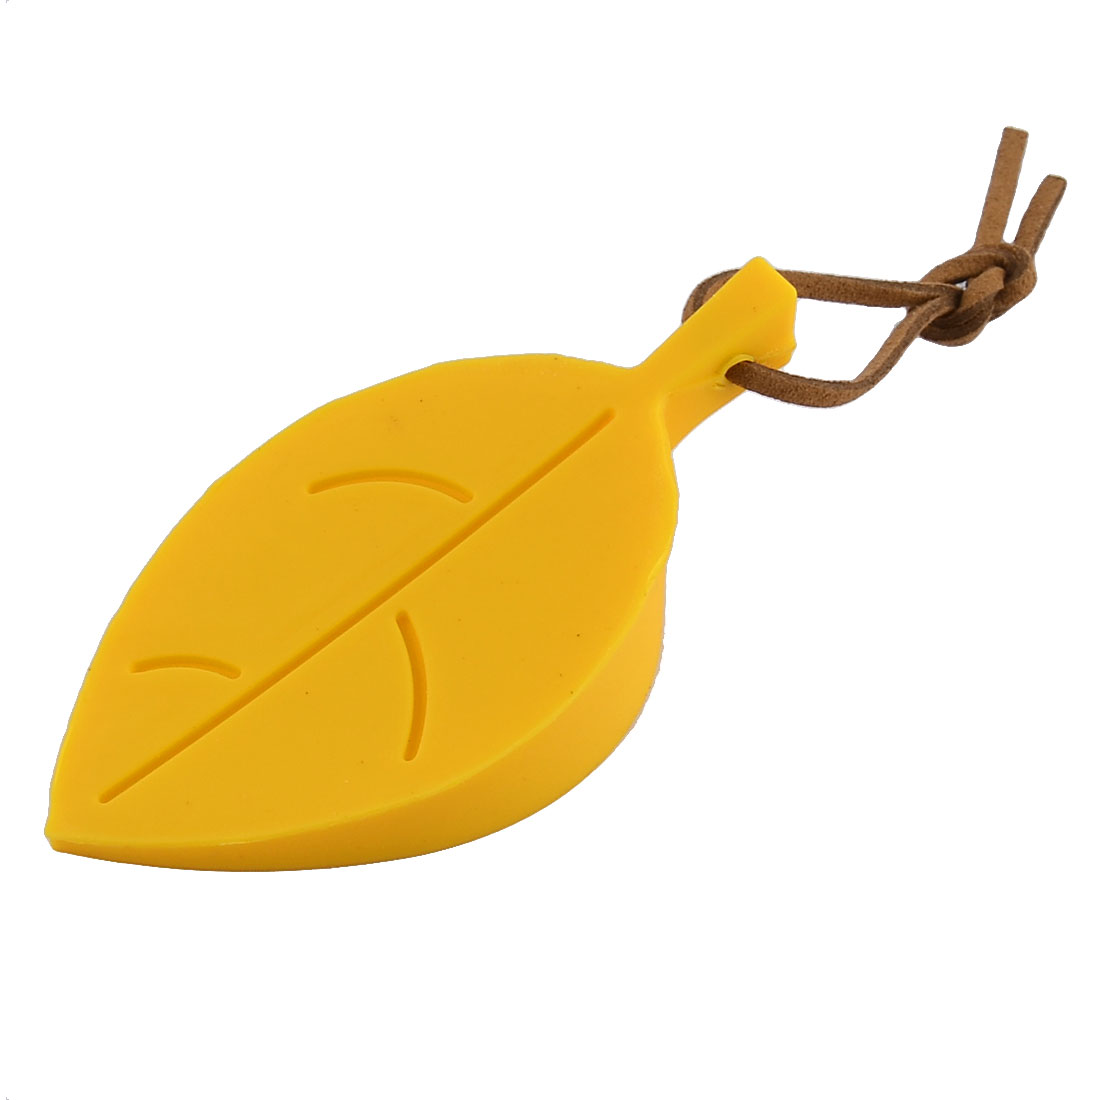 Home Office Leaf Style Flexible Silicone Wedge Finger Protector Door Stopper Yellow